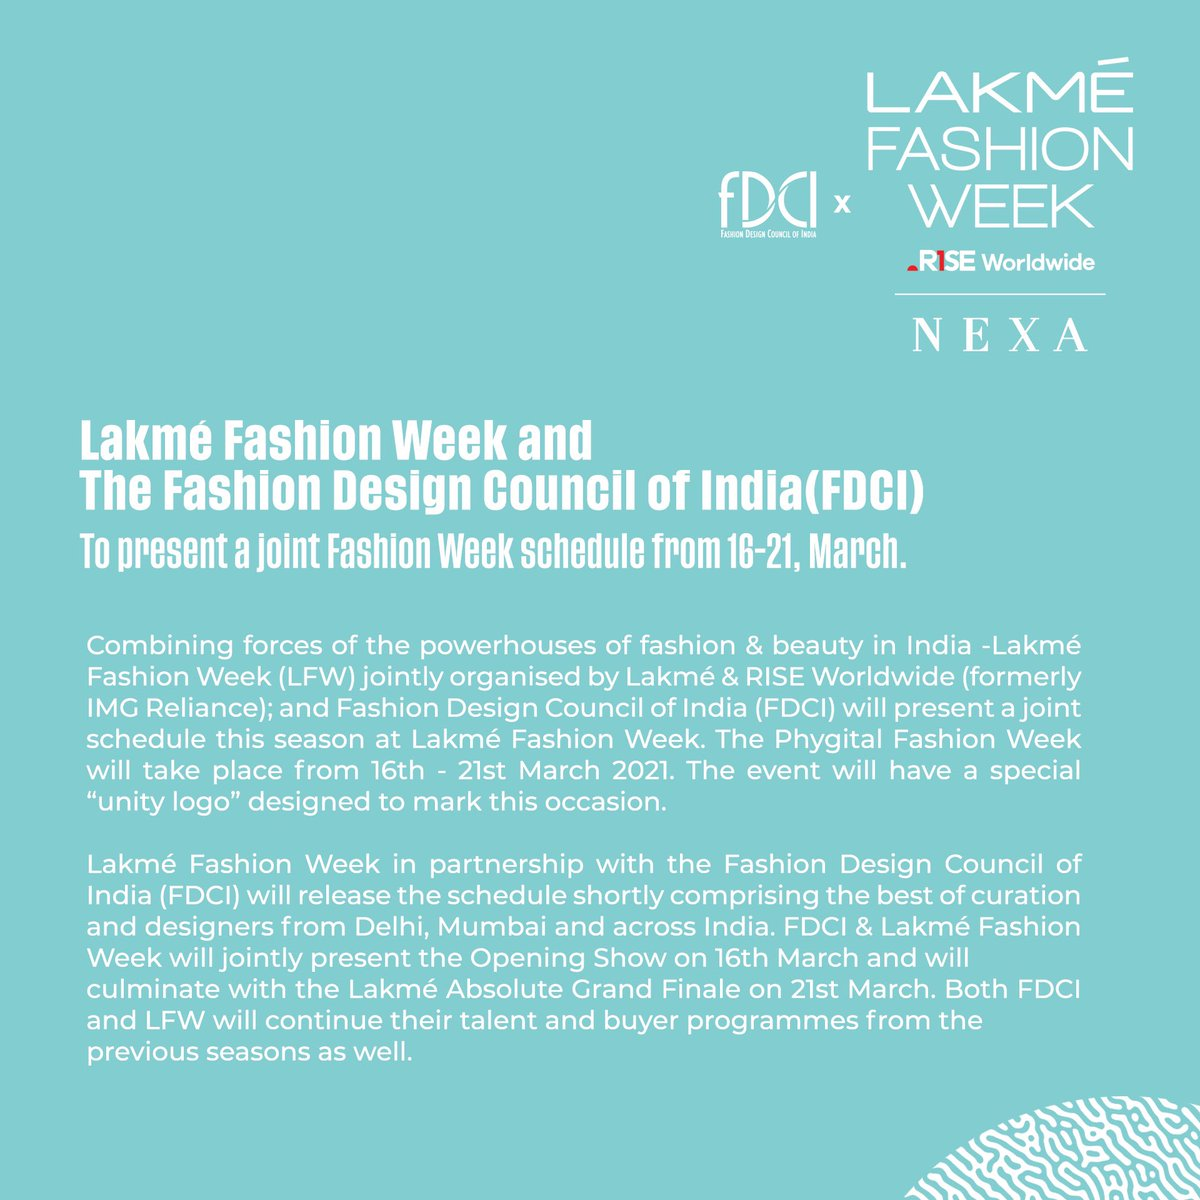 Lakmé Fashion Week and the Fashion Design Council of India (FDCI) have decided to join forces to bring to you a first-ever joint initiative - A Phygital Fashion Week.  @LakmeFashionWk @fdciofficial #LakmeFashionWeek #5DaysOfFashion #LFW #LFW2021